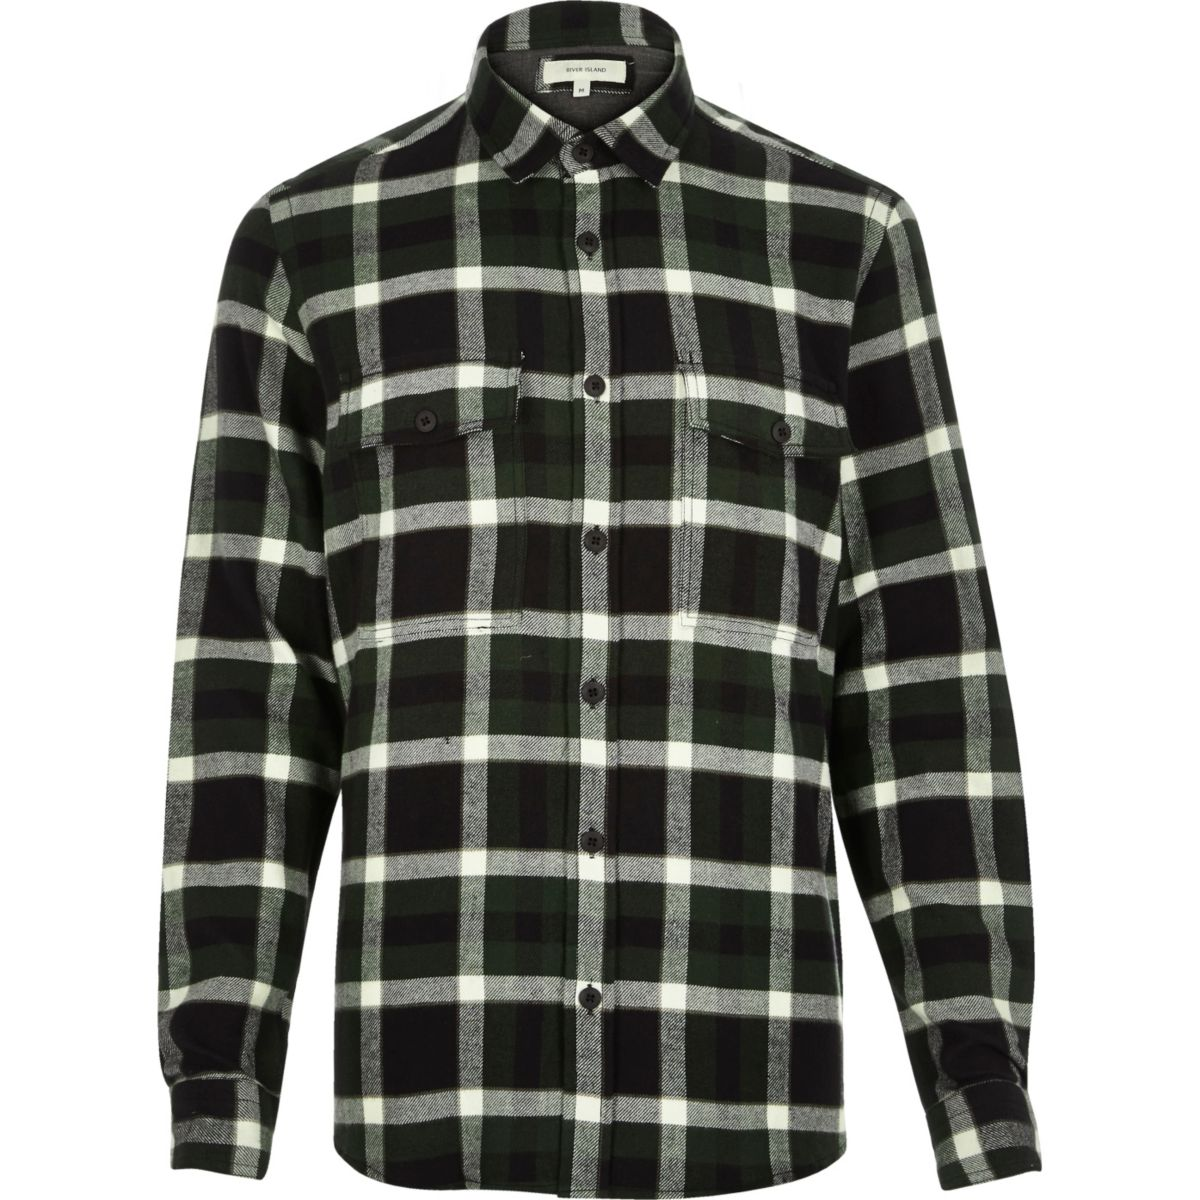 Dark green check flannel shirt